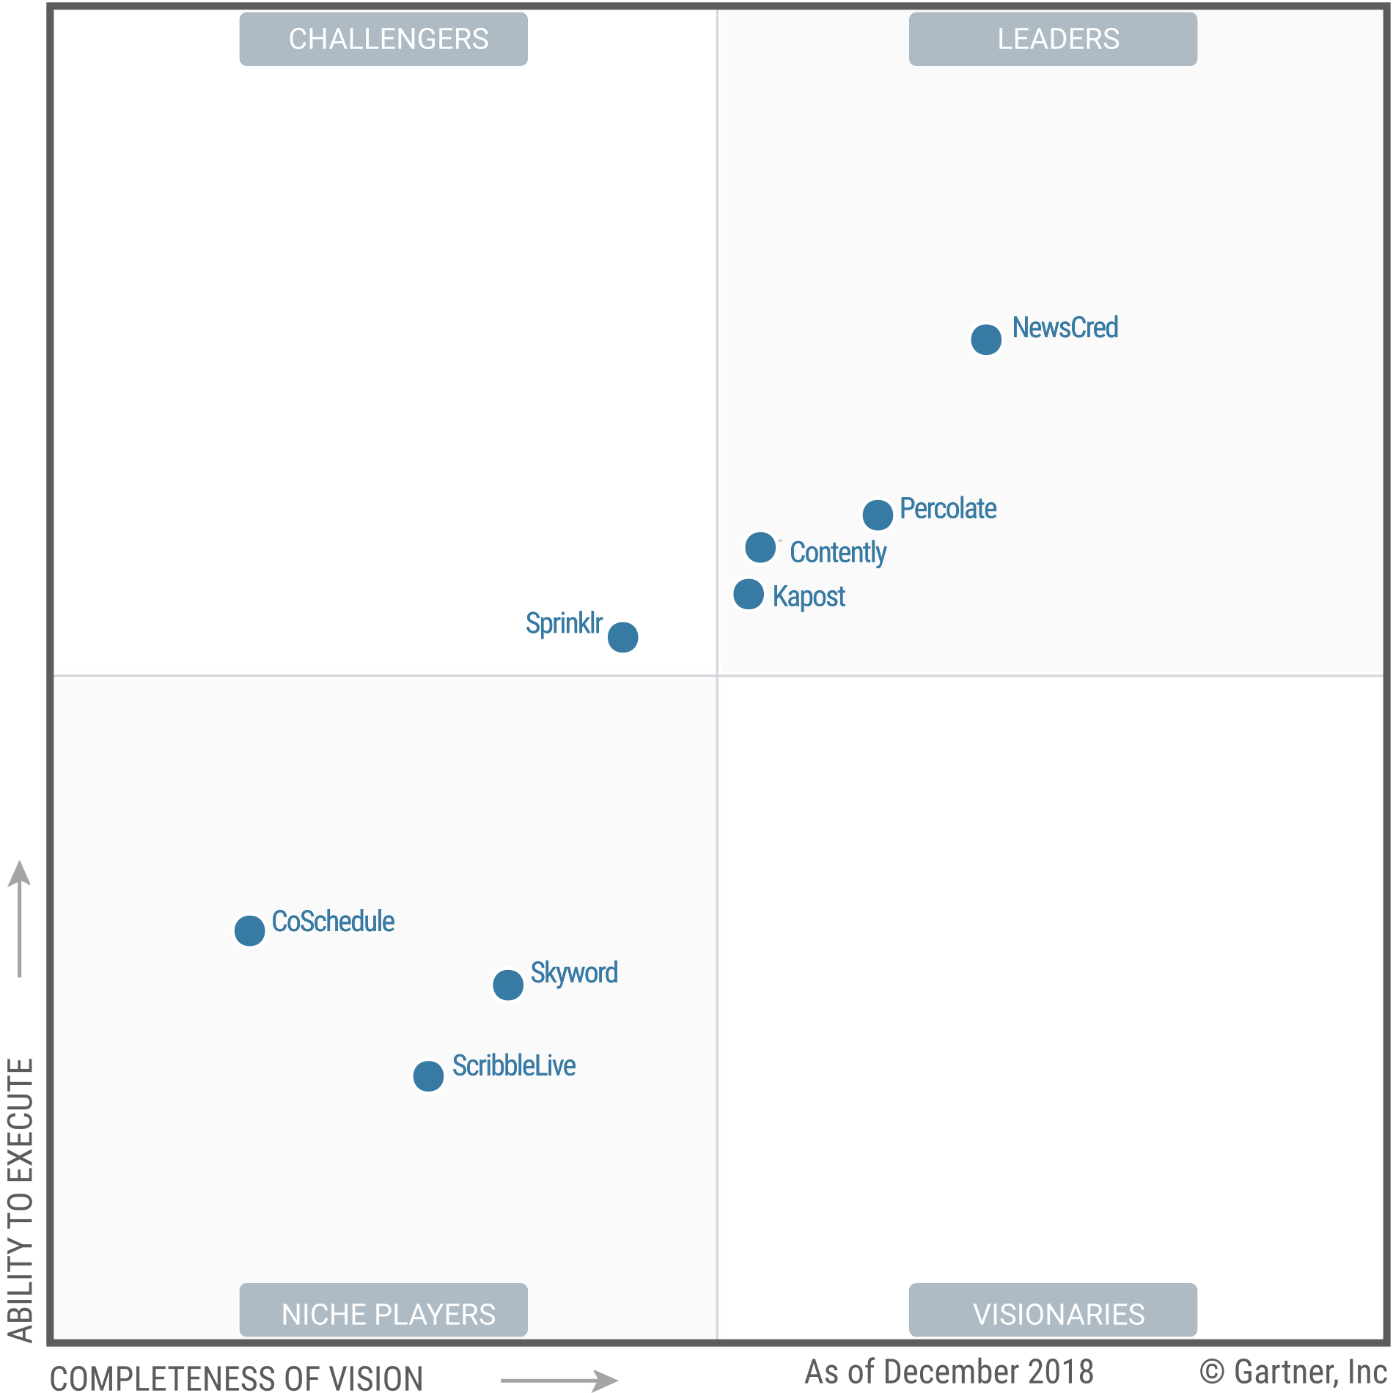 2019 Magic Quadrant.png